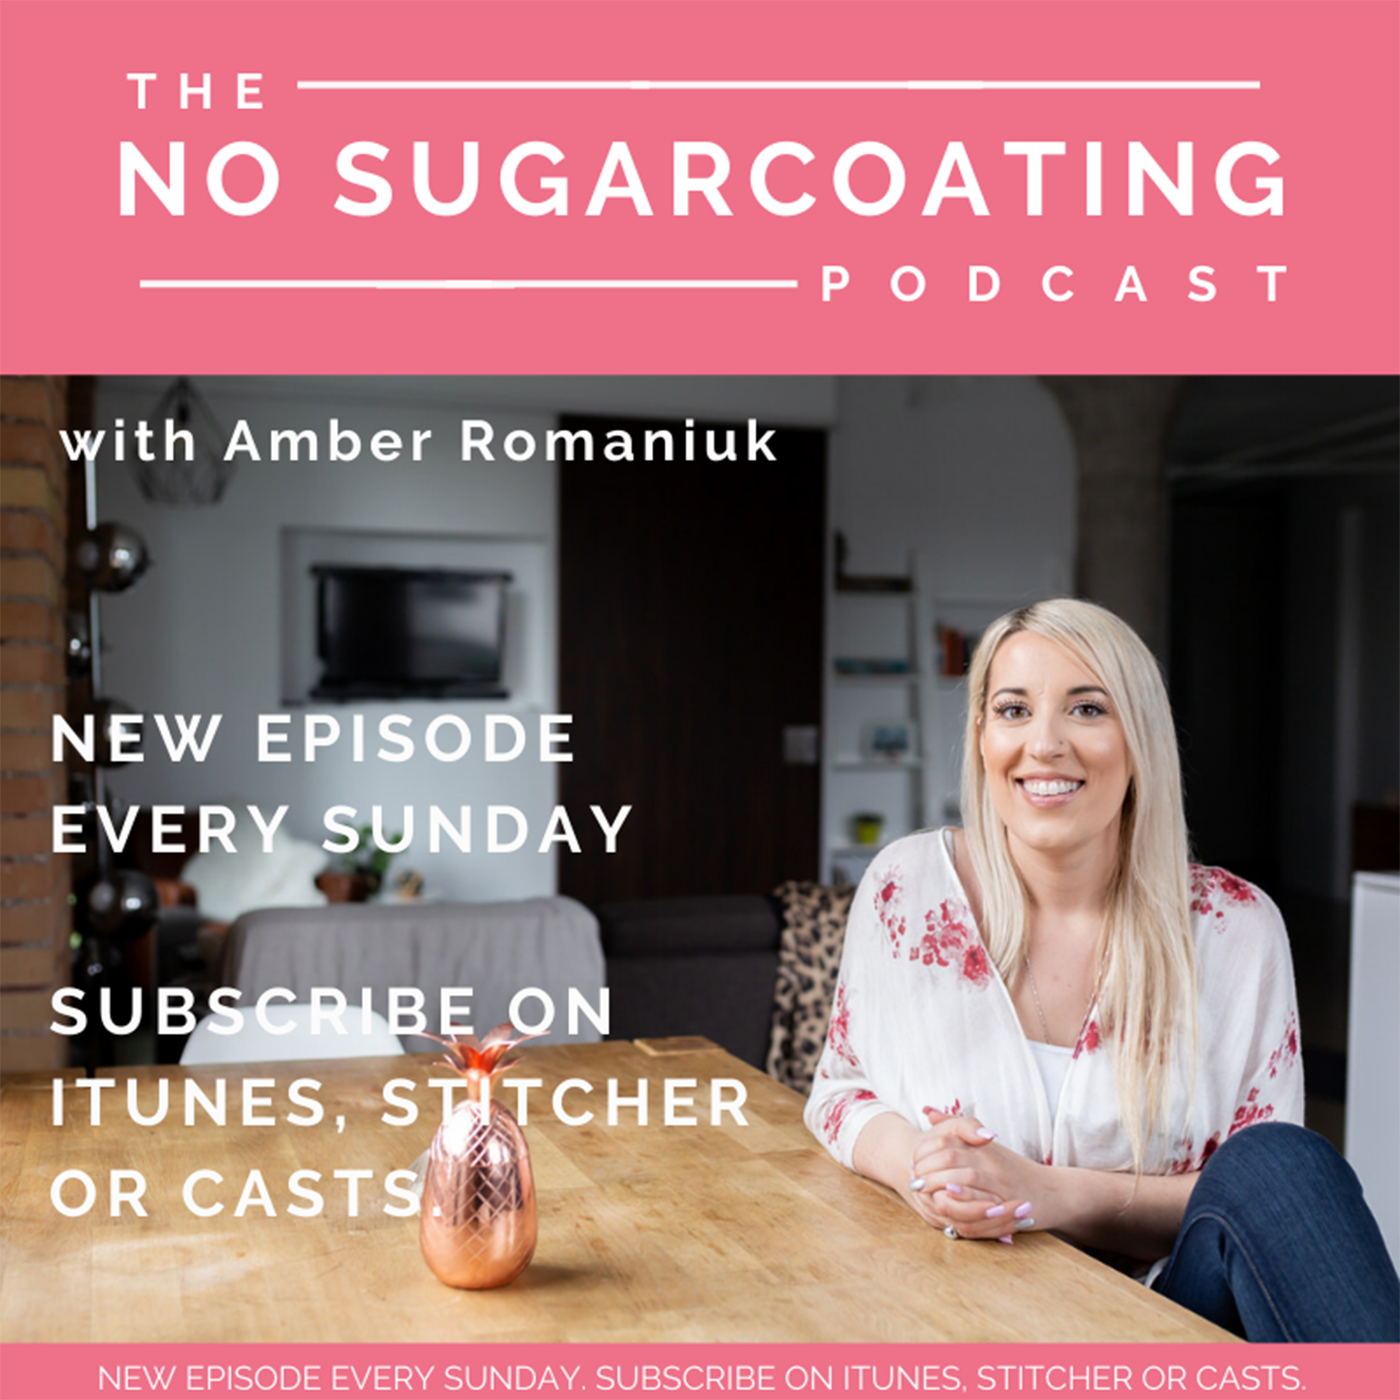 The No Sugarcoating Podcast show art